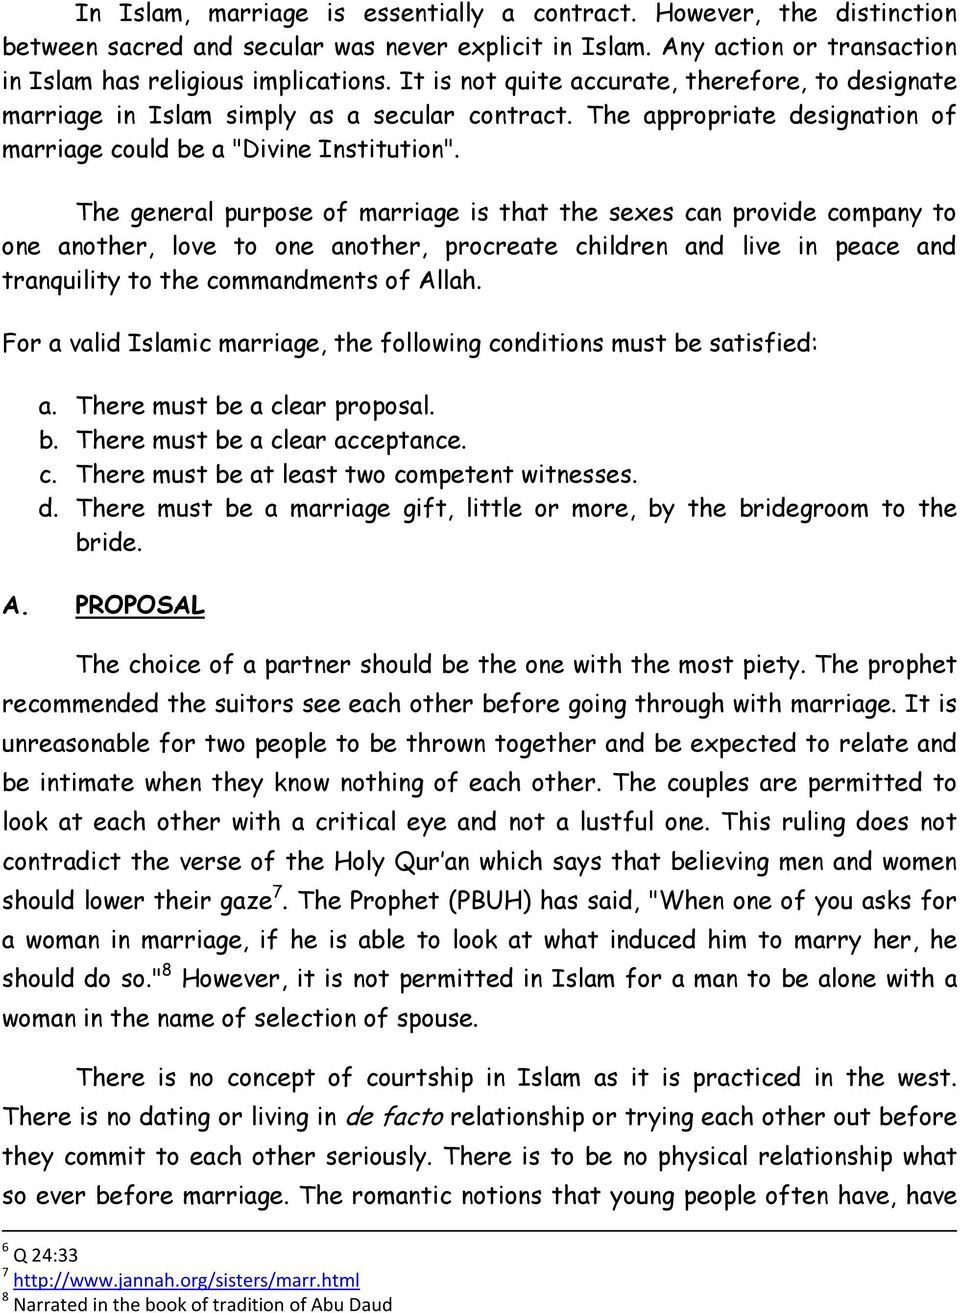 REQUIREMENTS OF A VALID ISLAMIC MARRIAGE VIS-À-VIS